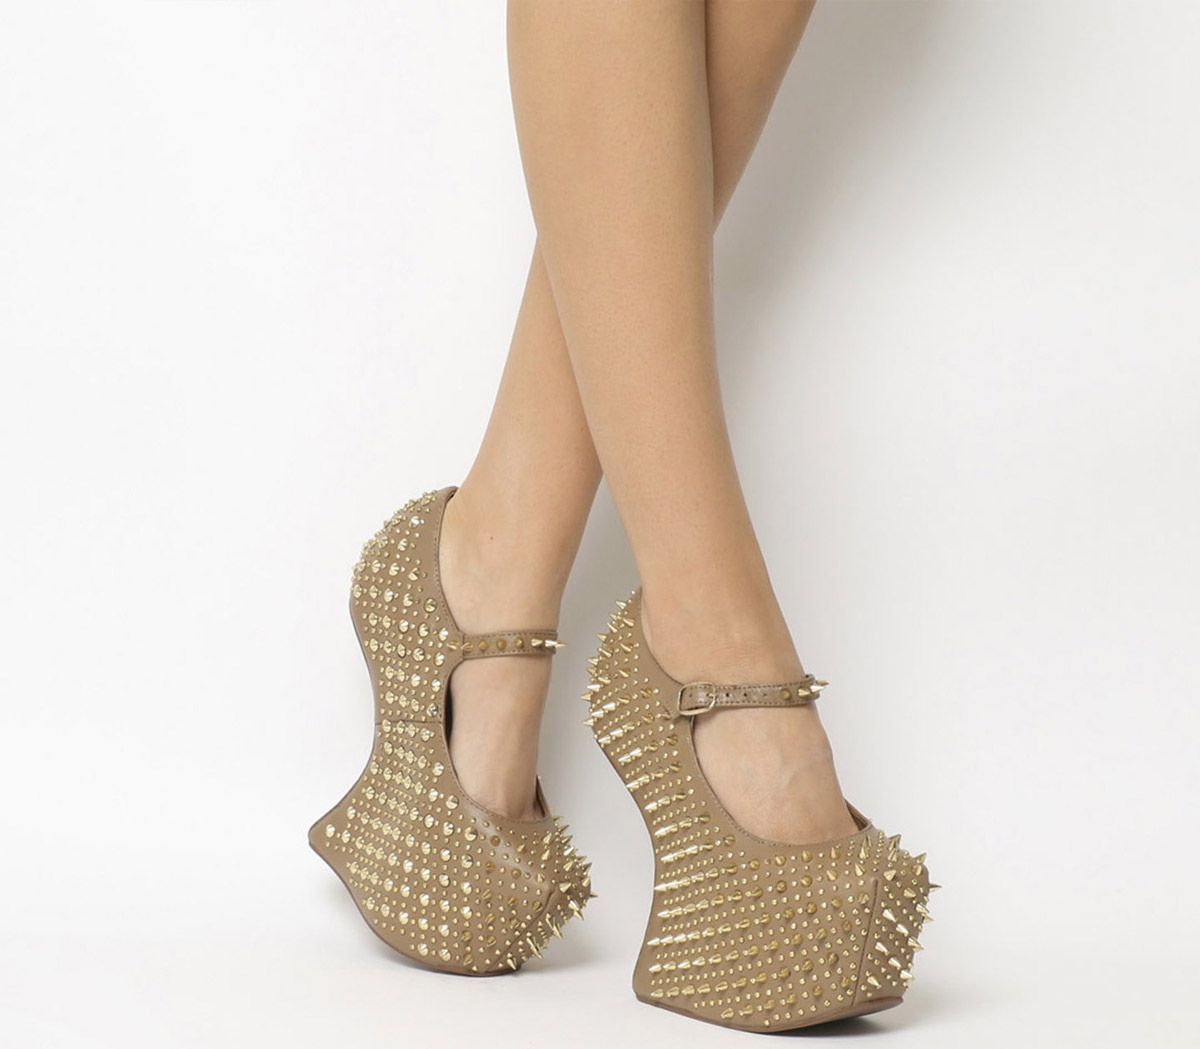 af688f813559 Jeffrey Campbell Prickly Wedge Taupe Leather Gold Spike - High Heels